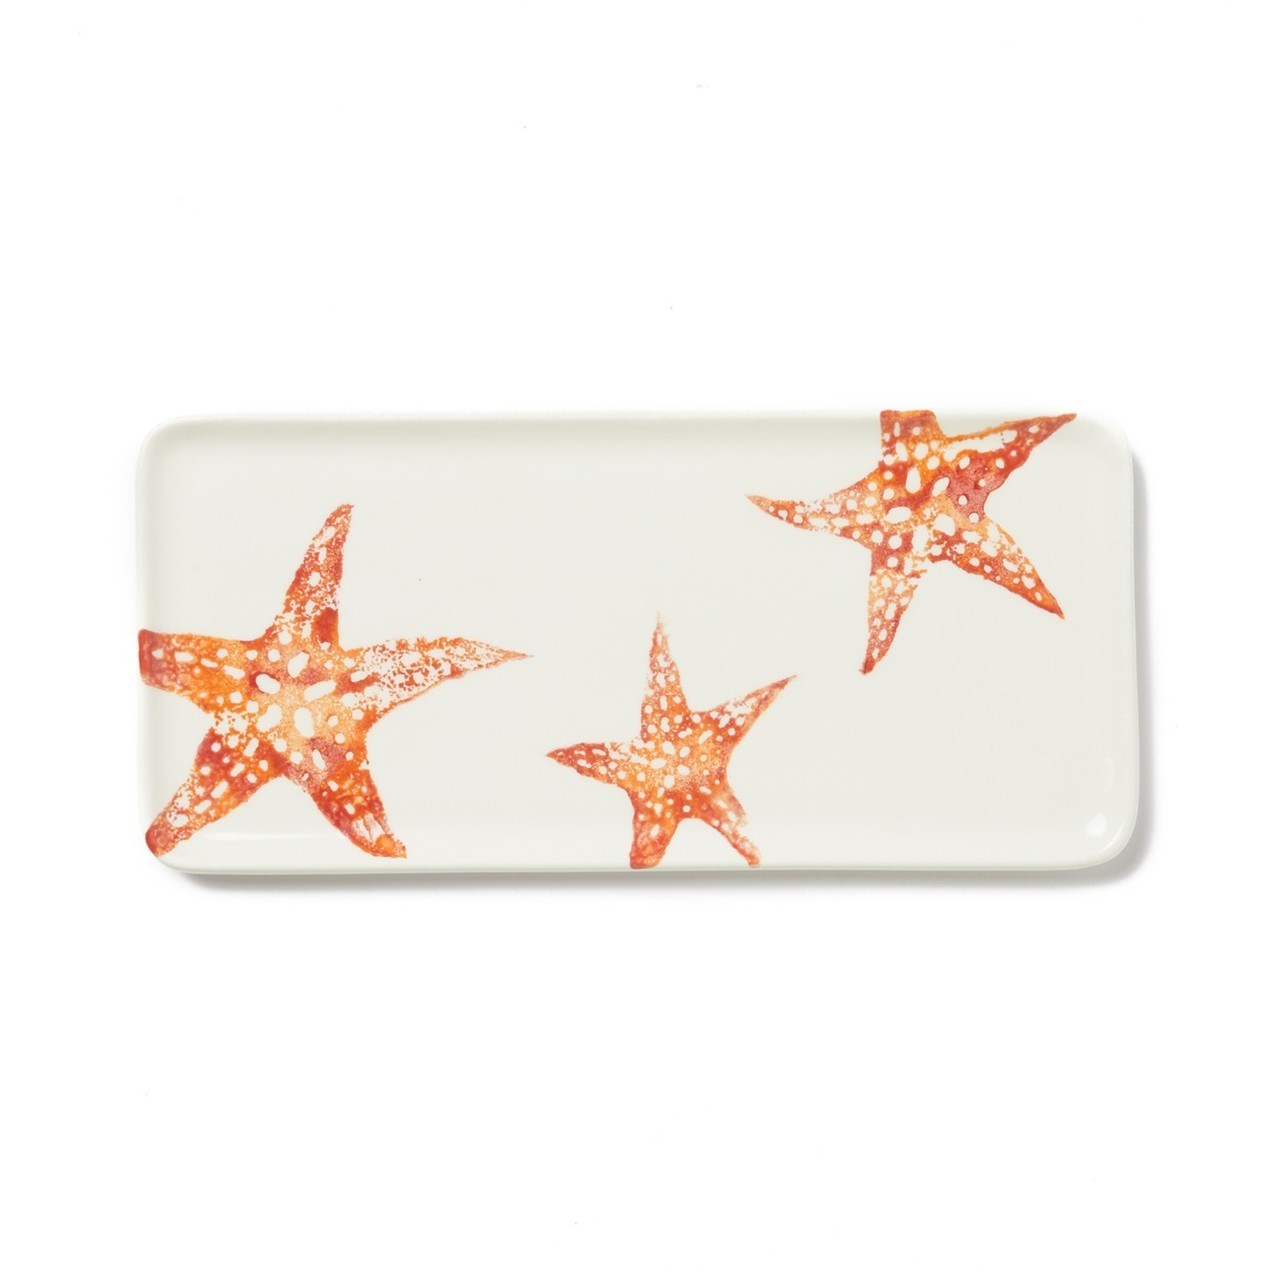 27940 - Coral Starfish Tray - $58 - Received